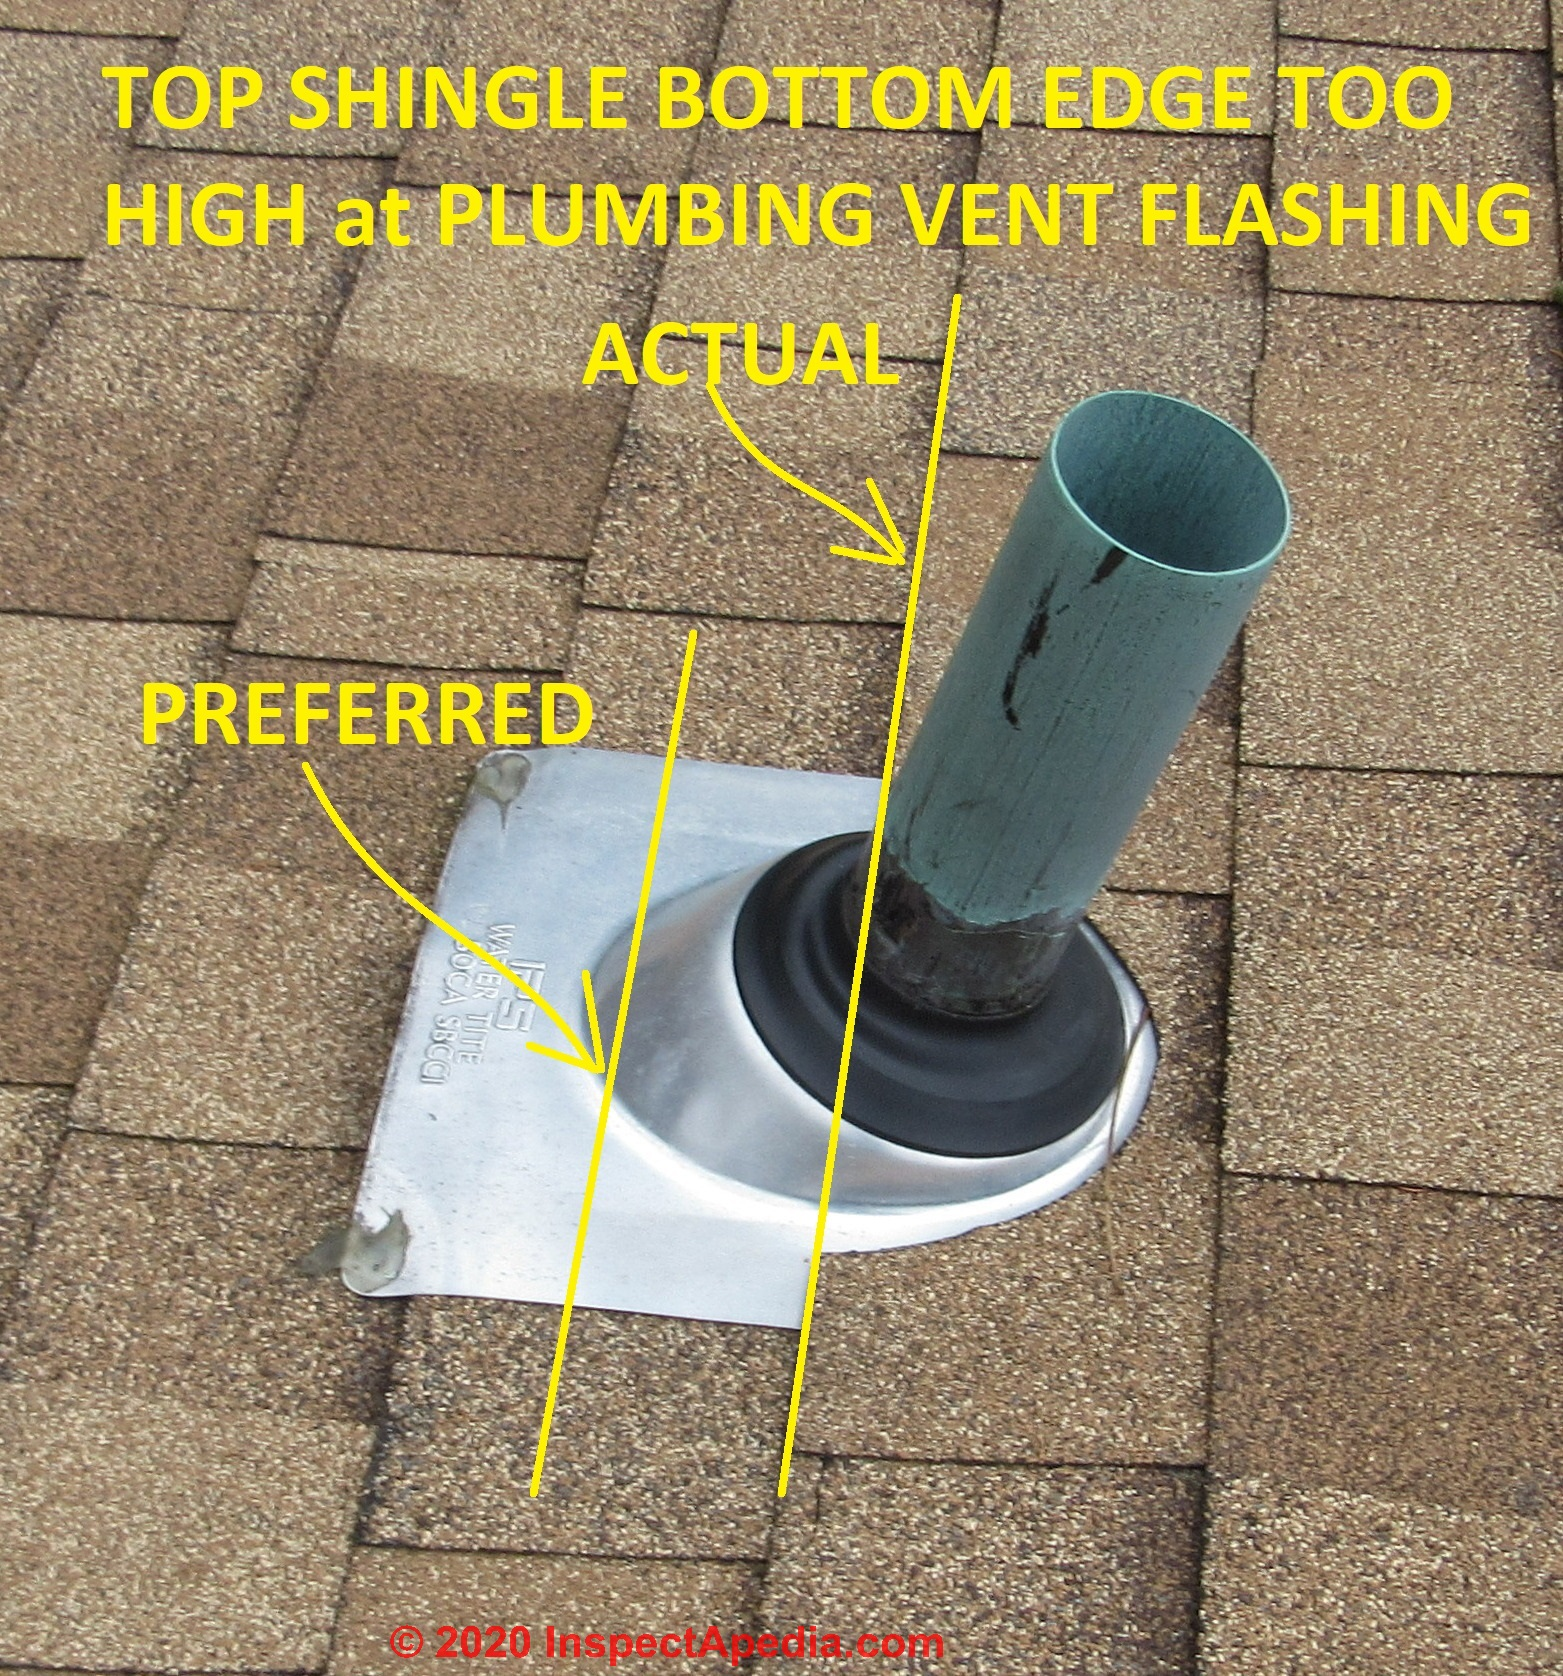 Plumbing Vents How To Inspect The Plumbing Vent System To Find Leaks And Sewer Gas Or Septic Gas Odor Sources